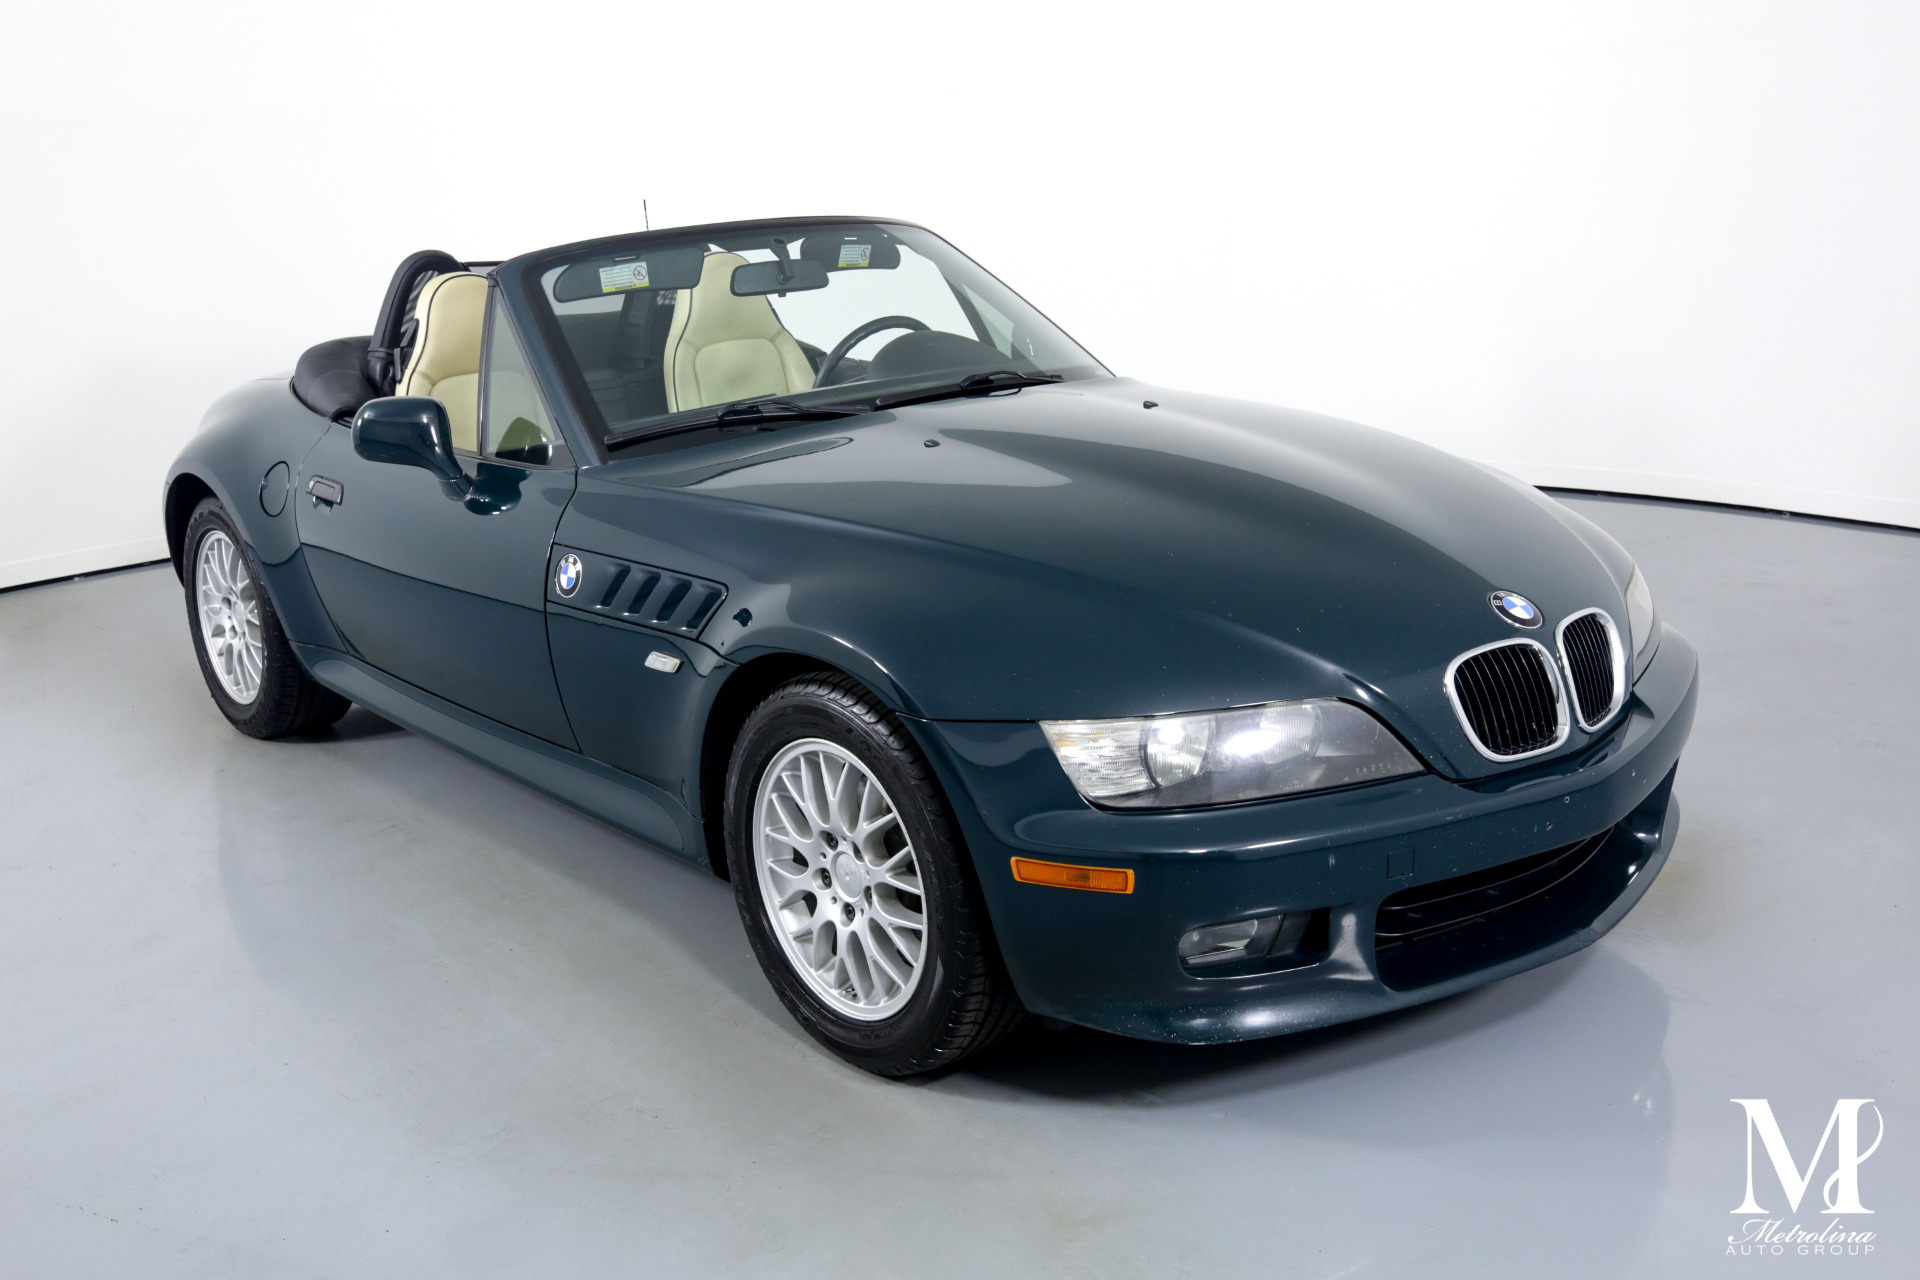 Used 1999 BMW Z3 2.8 for sale $14,996 at Metrolina Auto Group in Charlotte NC 28217 - 3